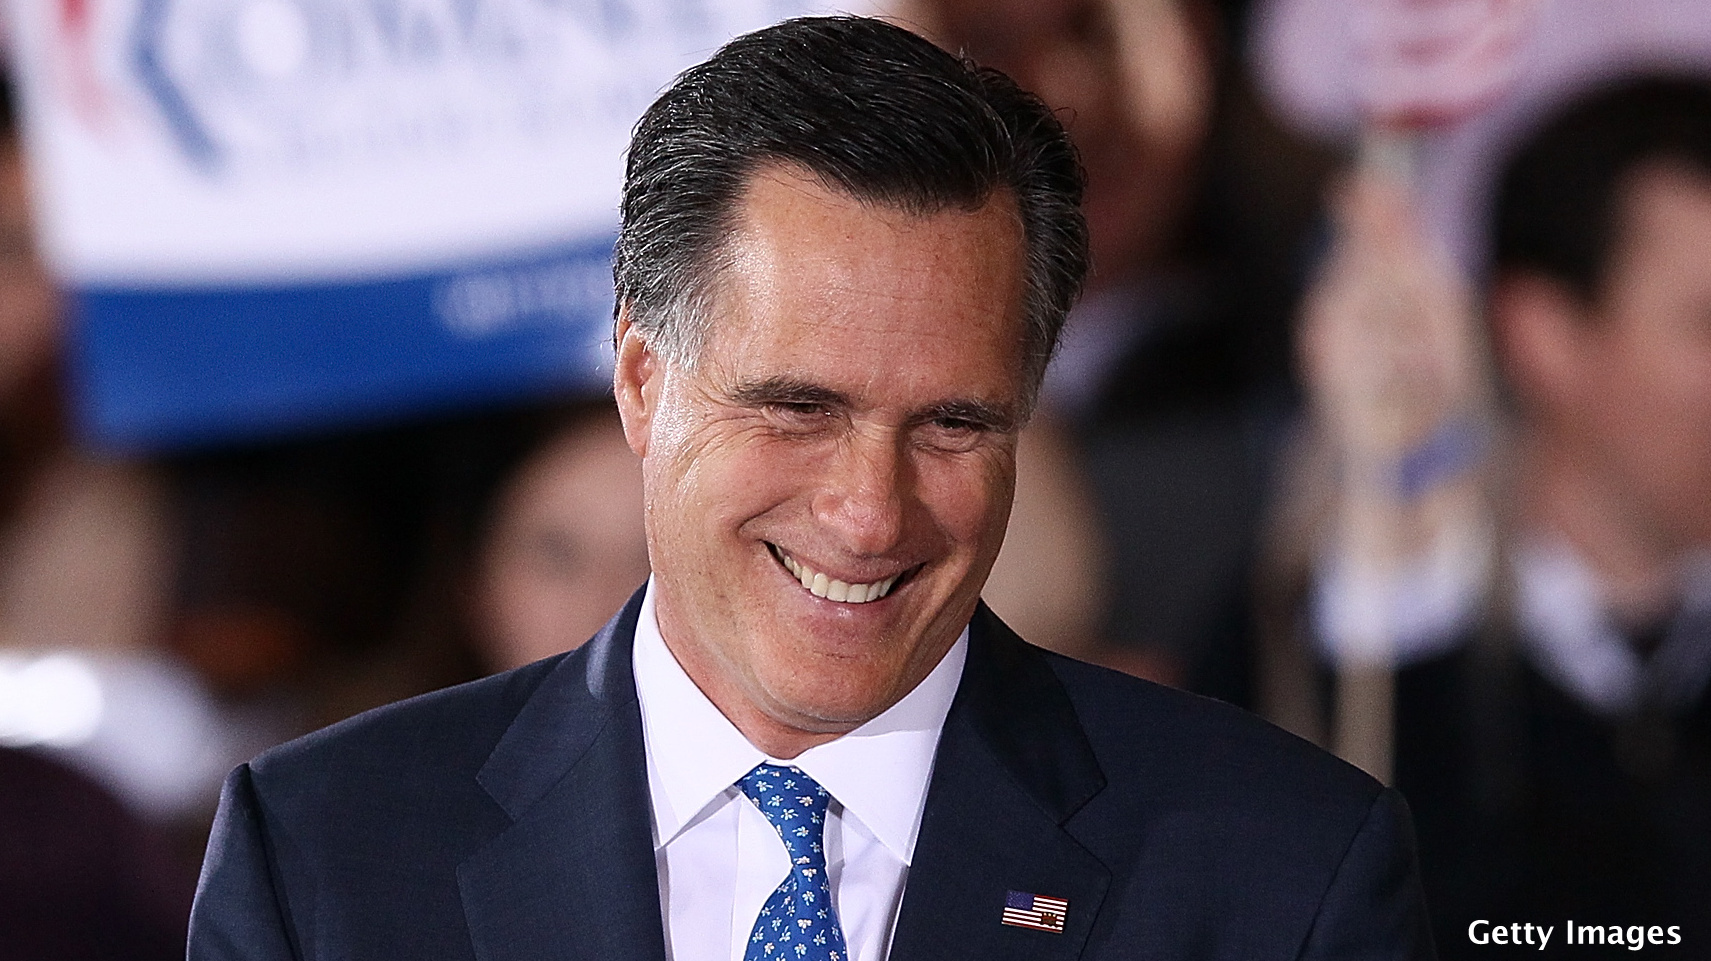 CNN Poll: Romney favorable rating rebounds